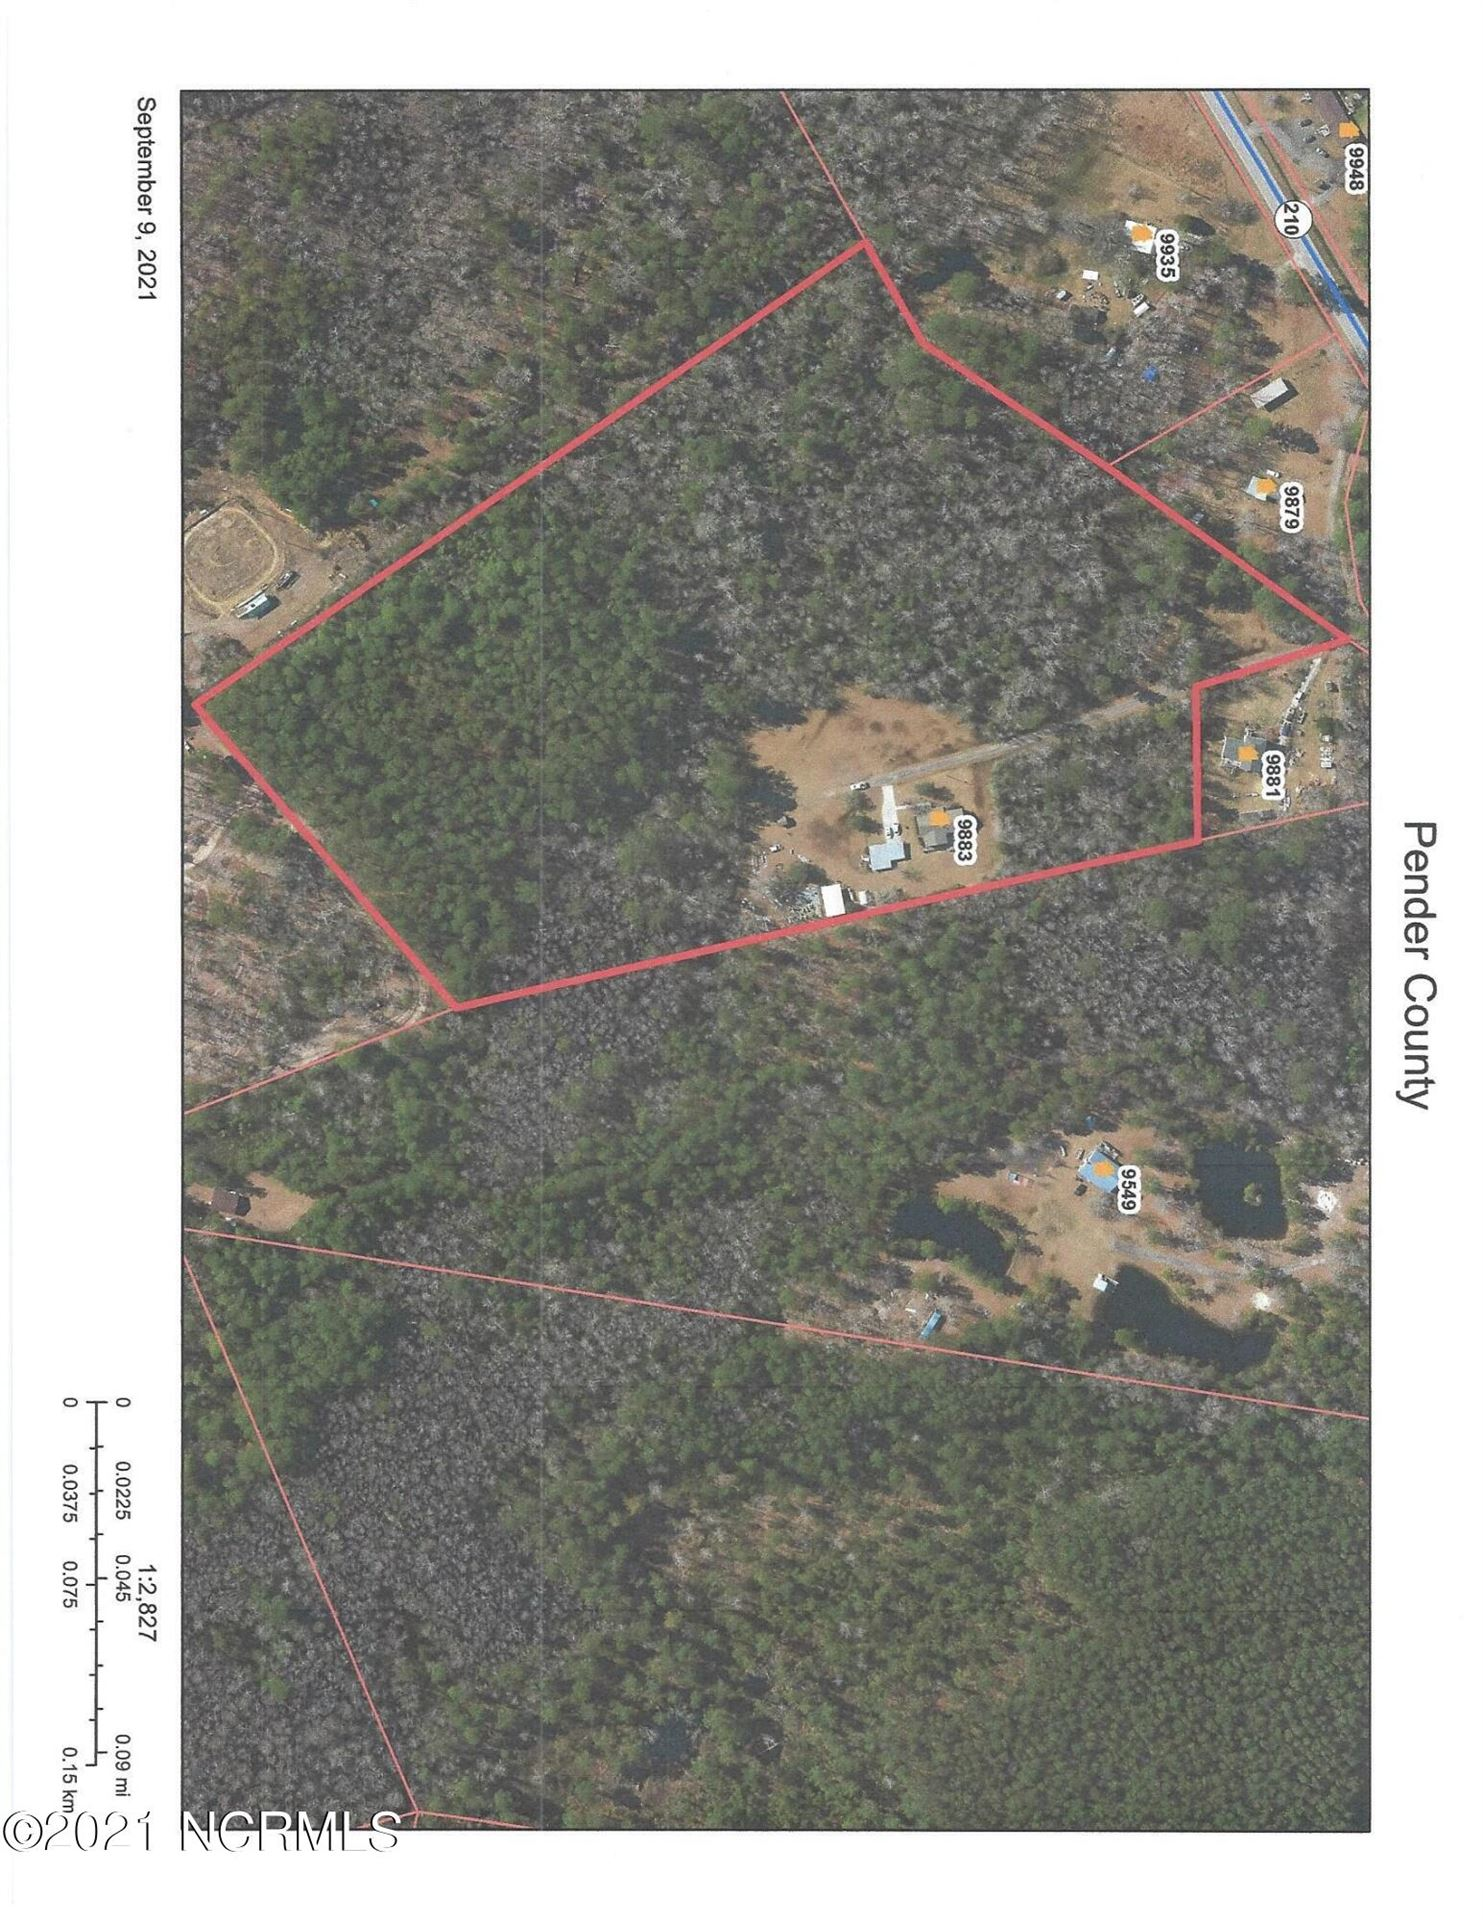 Photo of 9883 Nc Highway 210, Rocky Point, NC 28457 (MLS # 100290274)